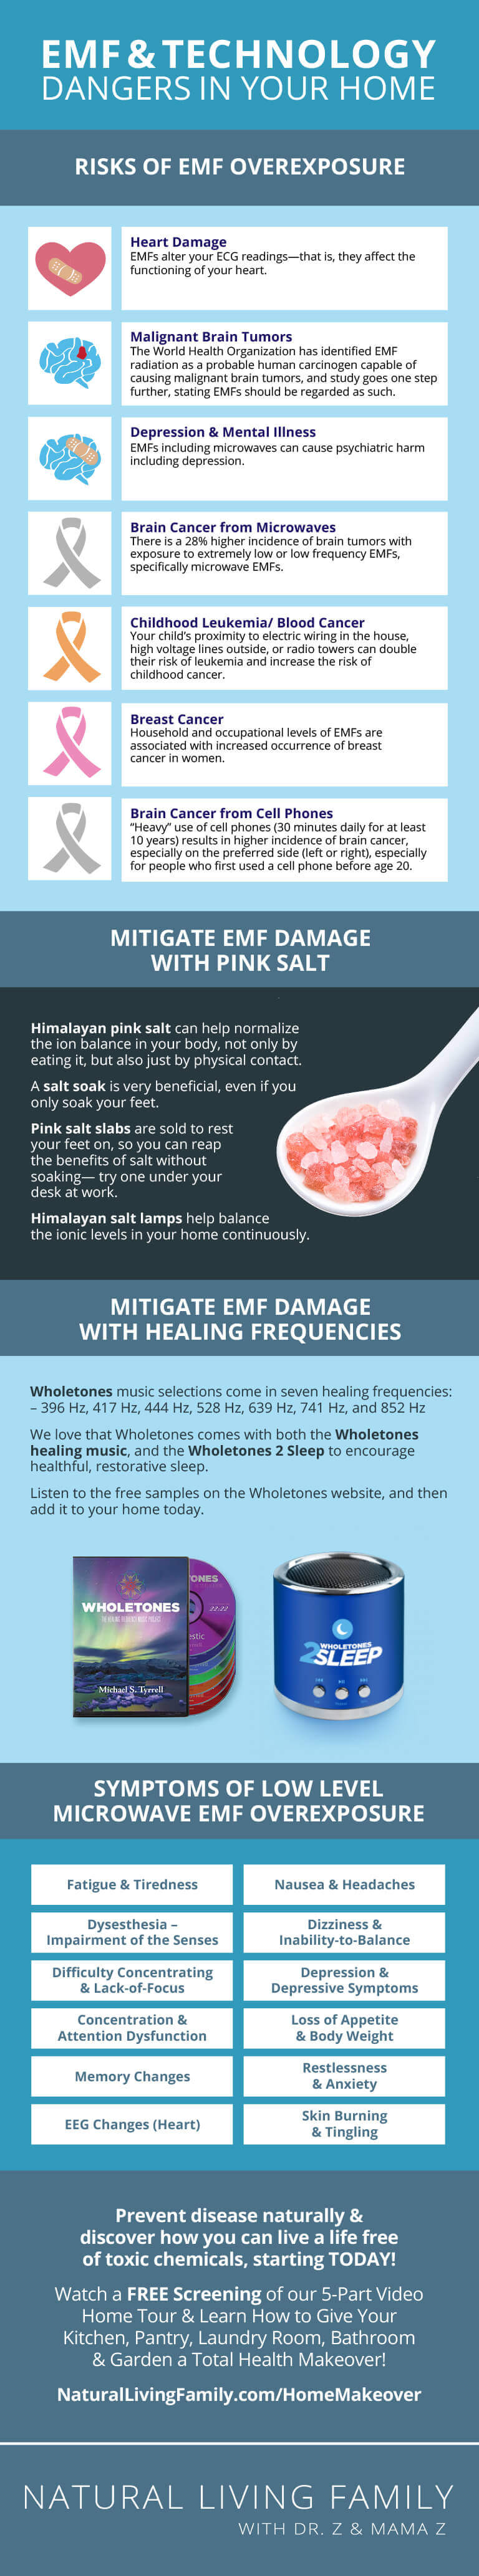 Dangers of EMF and Microwave Radiation and What to Do About It